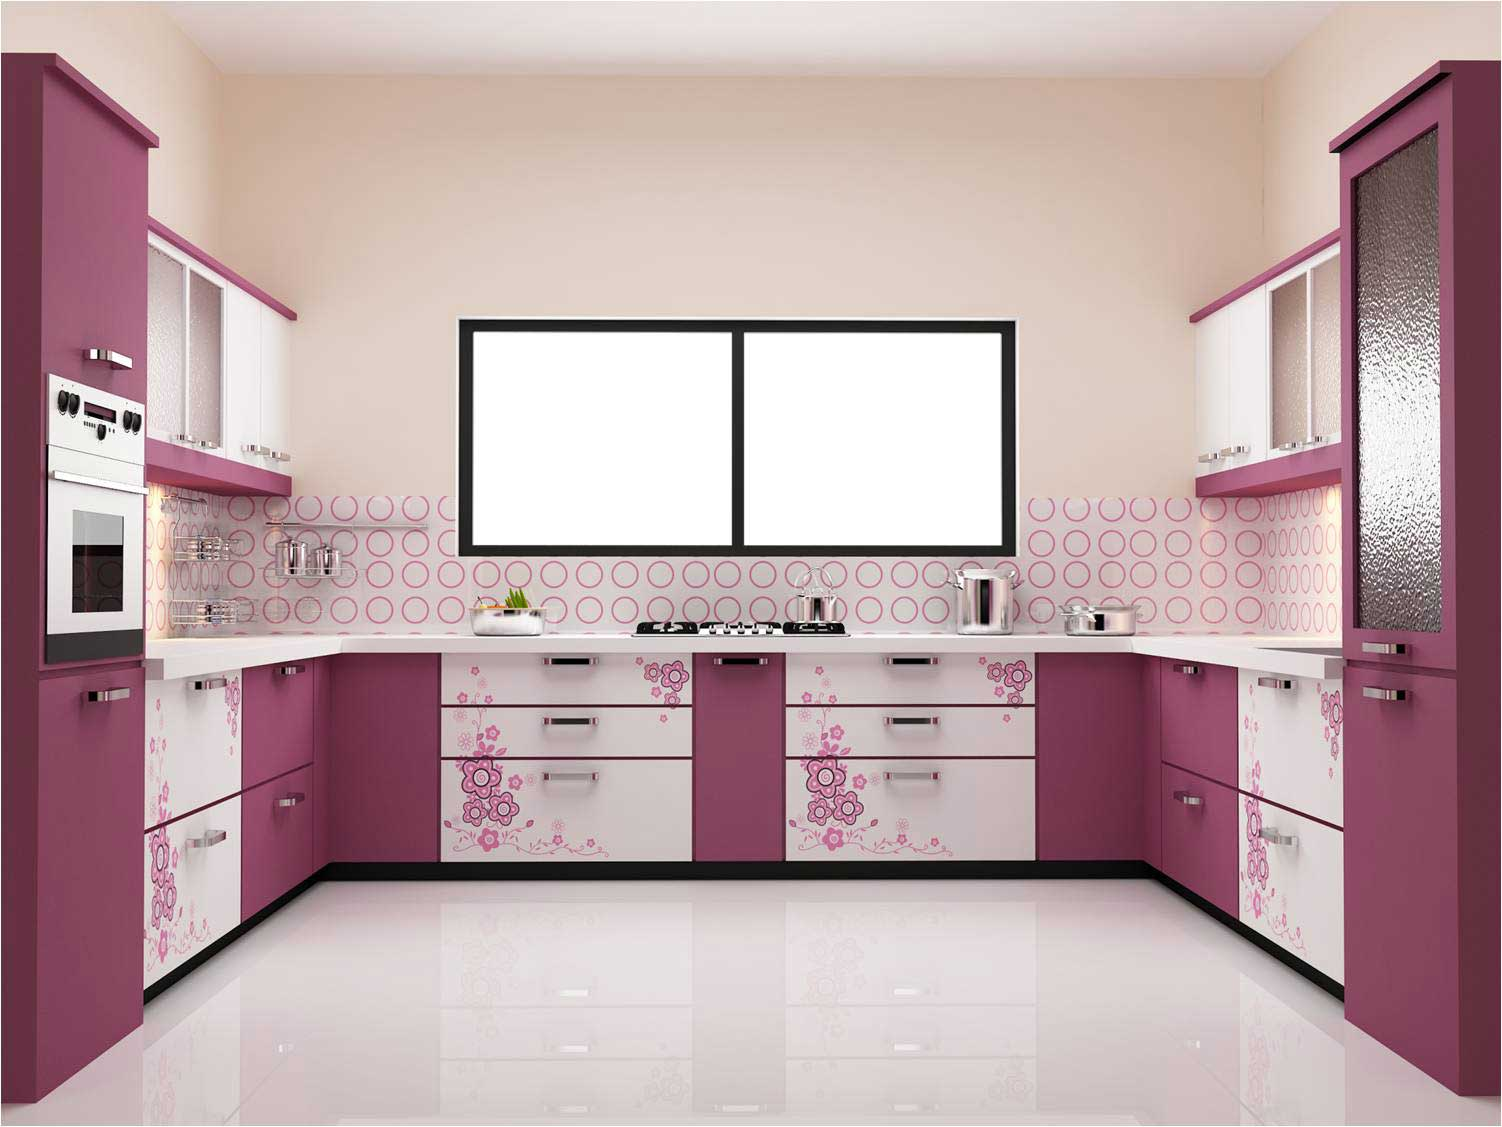 Modular kitchen installation interior decoration kolkata for Modular kitchen shelves designs